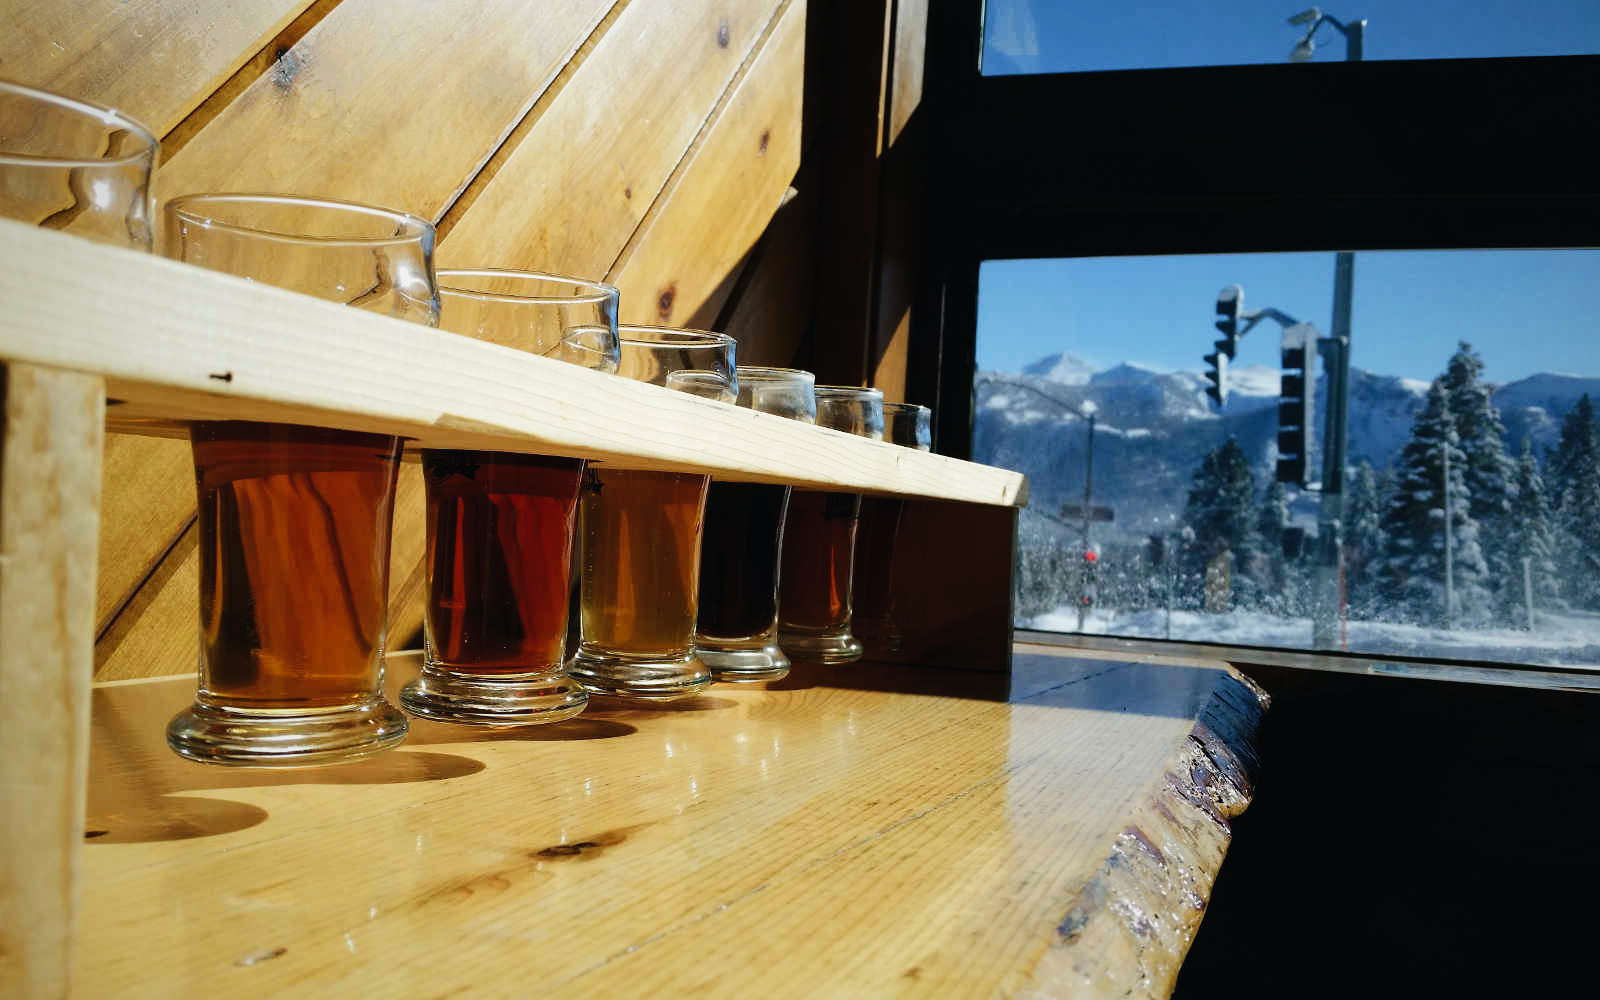 Beer tasting in Winter